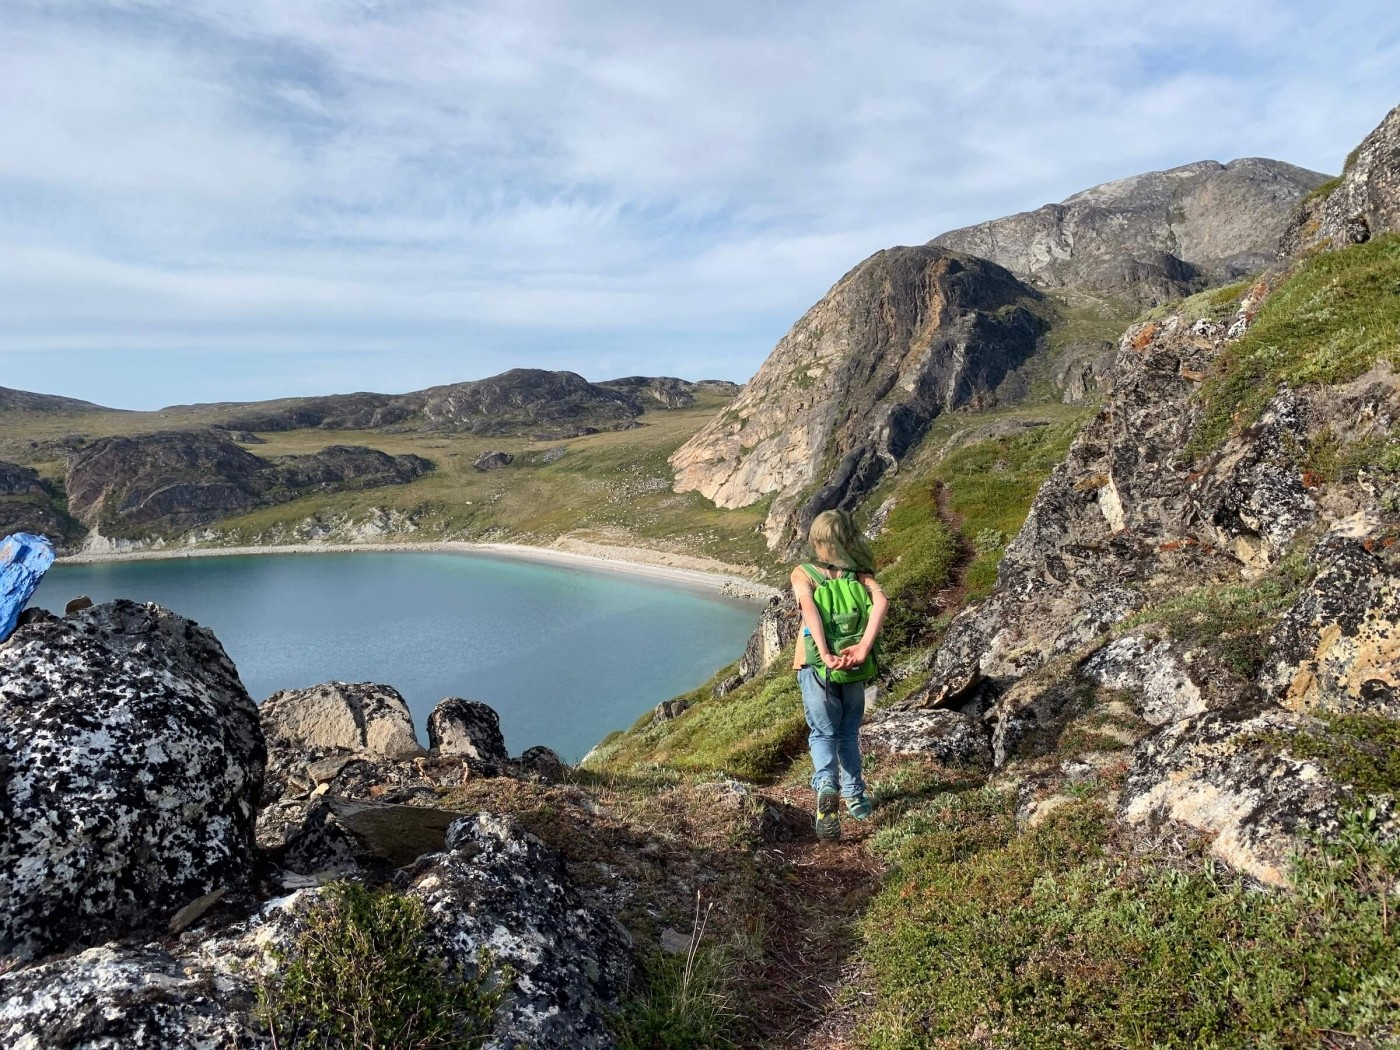 Hiker in the beautiful landscape around Hotel Diskobay. Photo by Espen Andersen, Visit Greenland